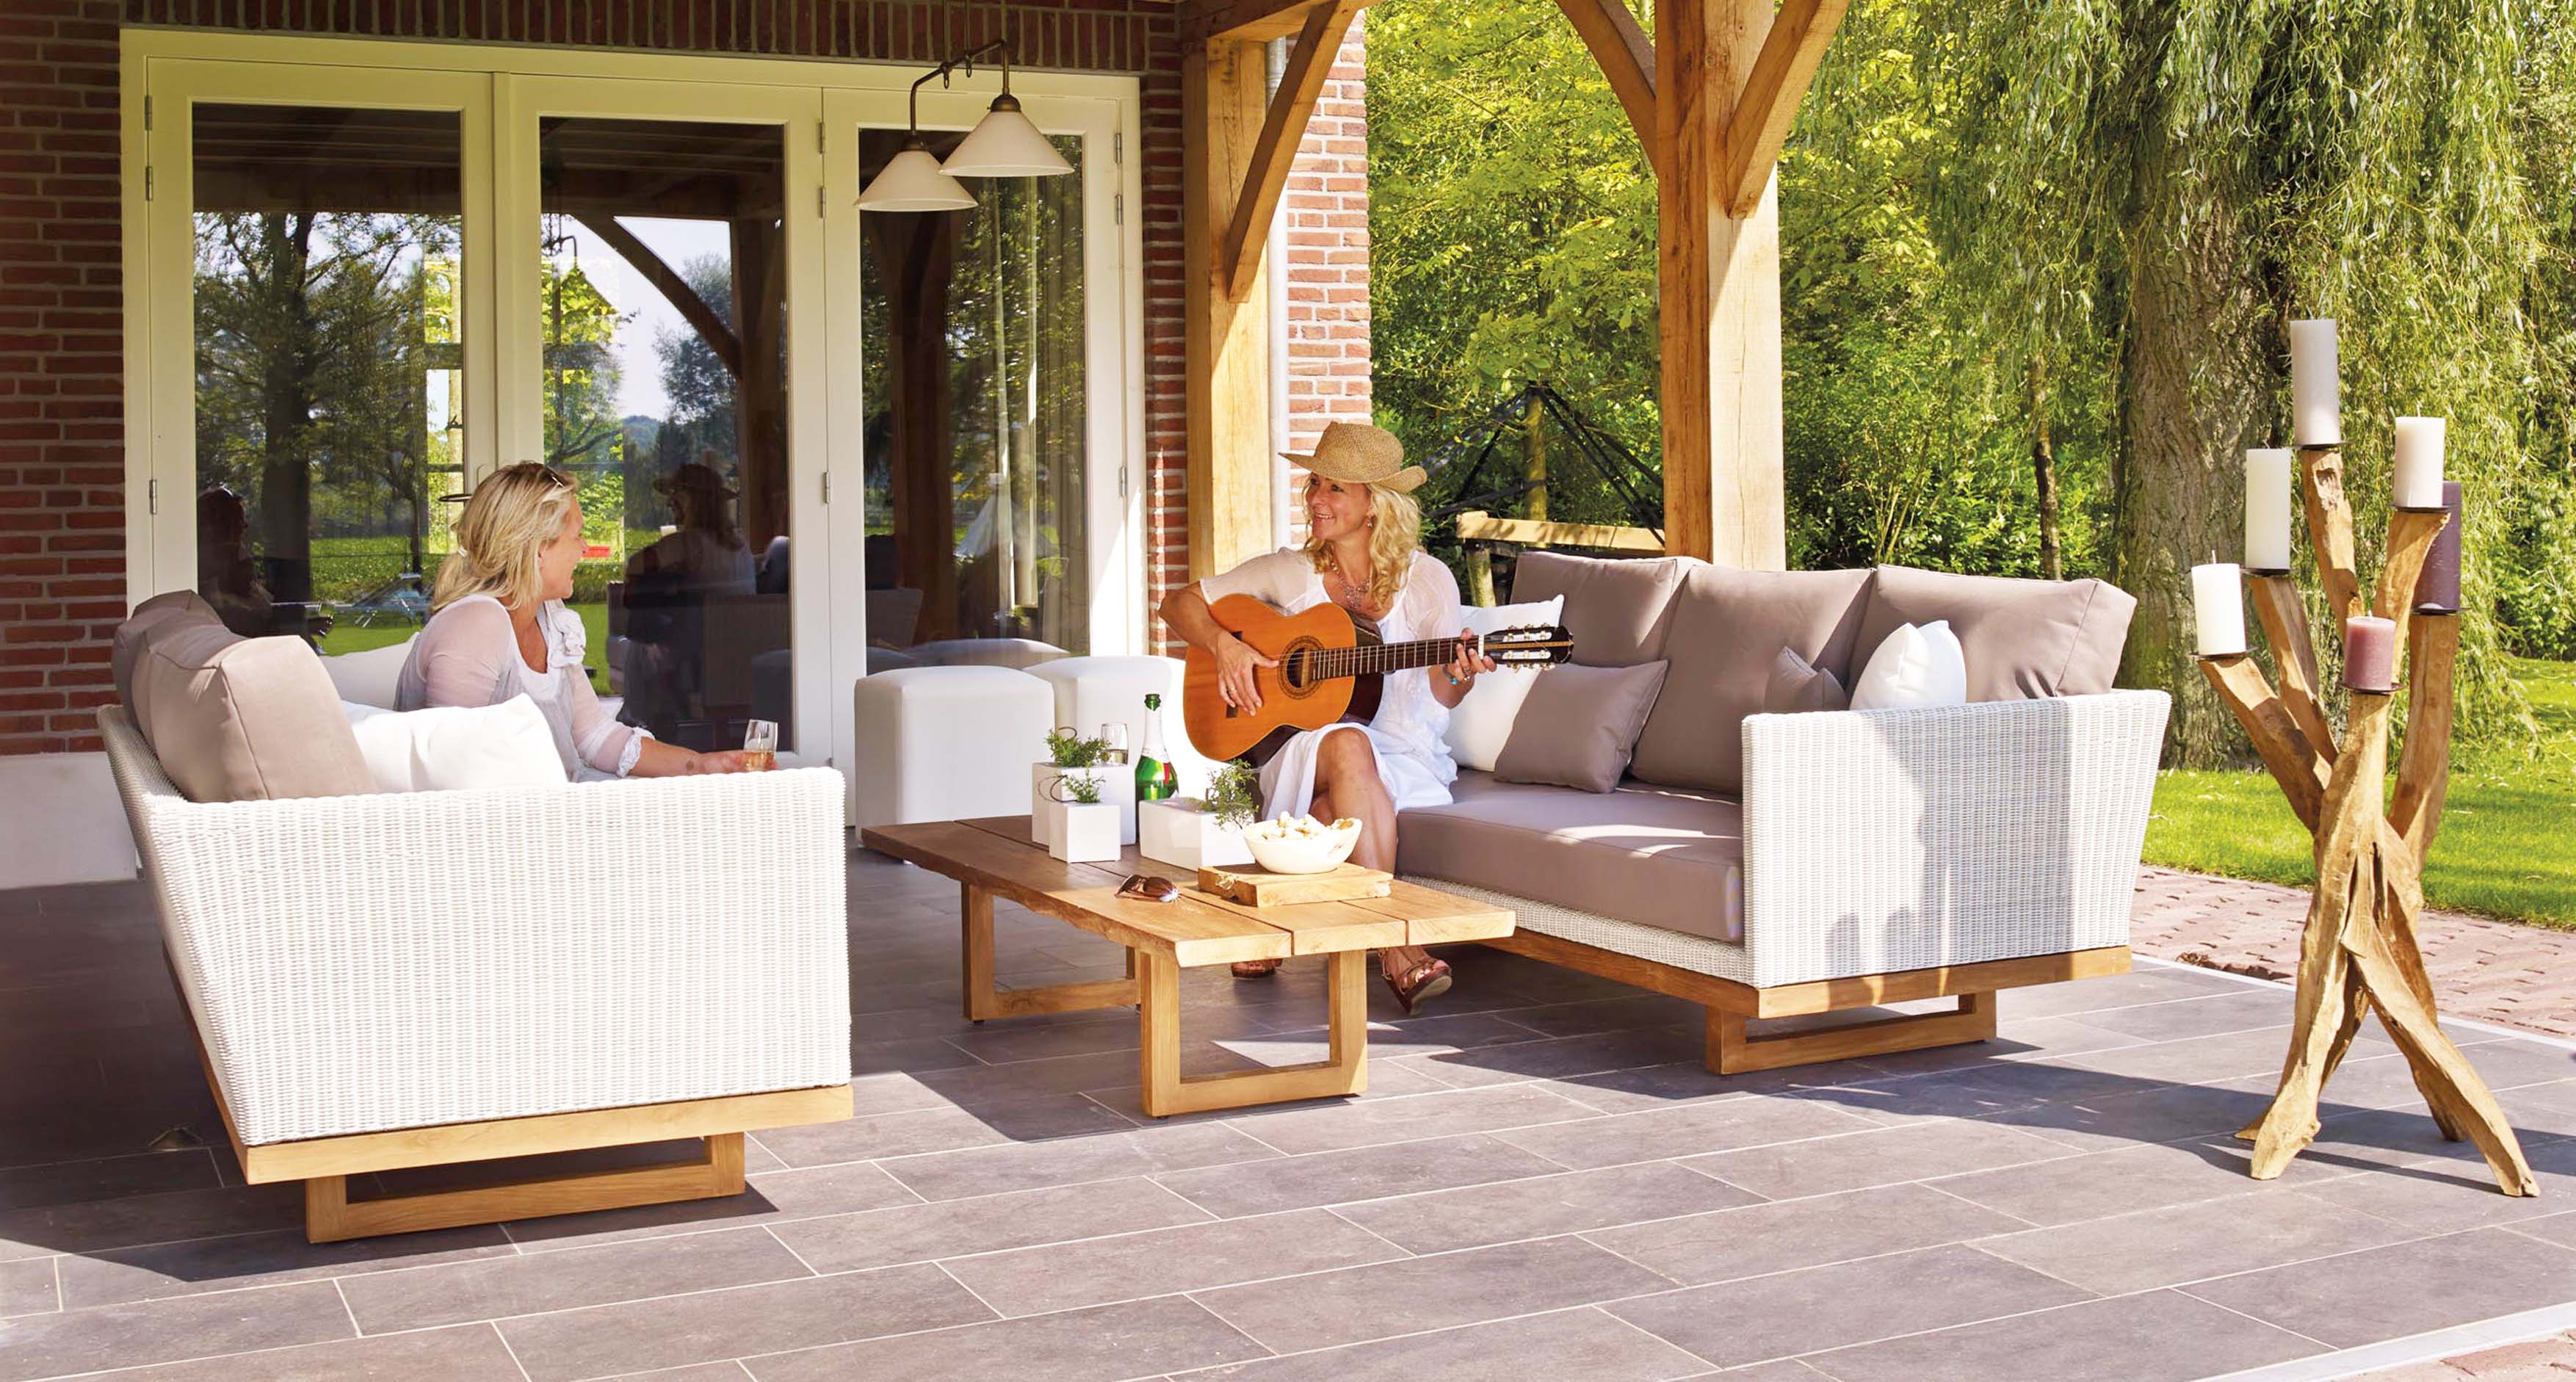 wood-coffee-table-for-outdoor-in-patio-with-grey-and-white-fabric-sofa